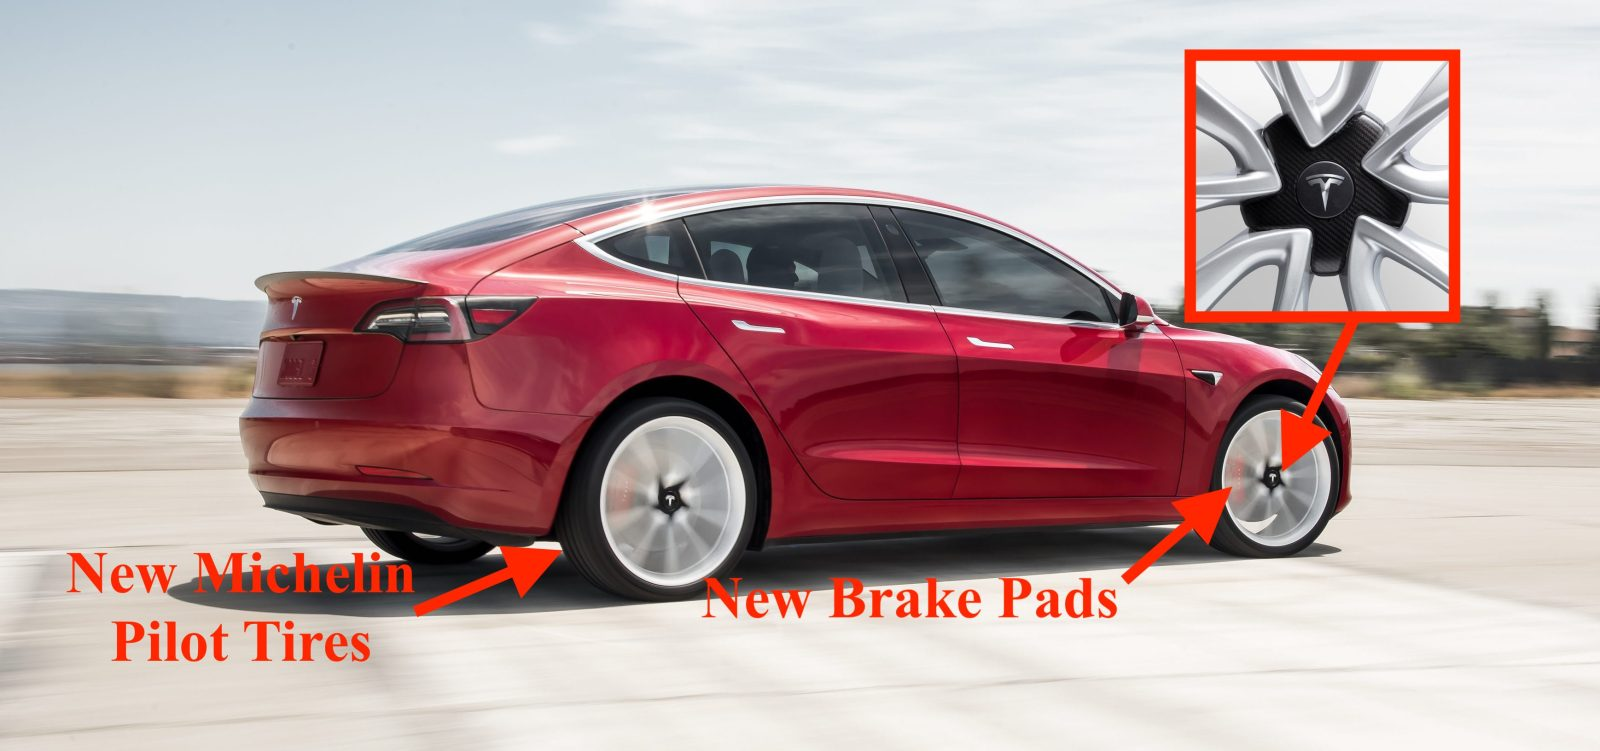 Tesla is planning a 'Track Mode Package' with sport tires, front brakes, and more